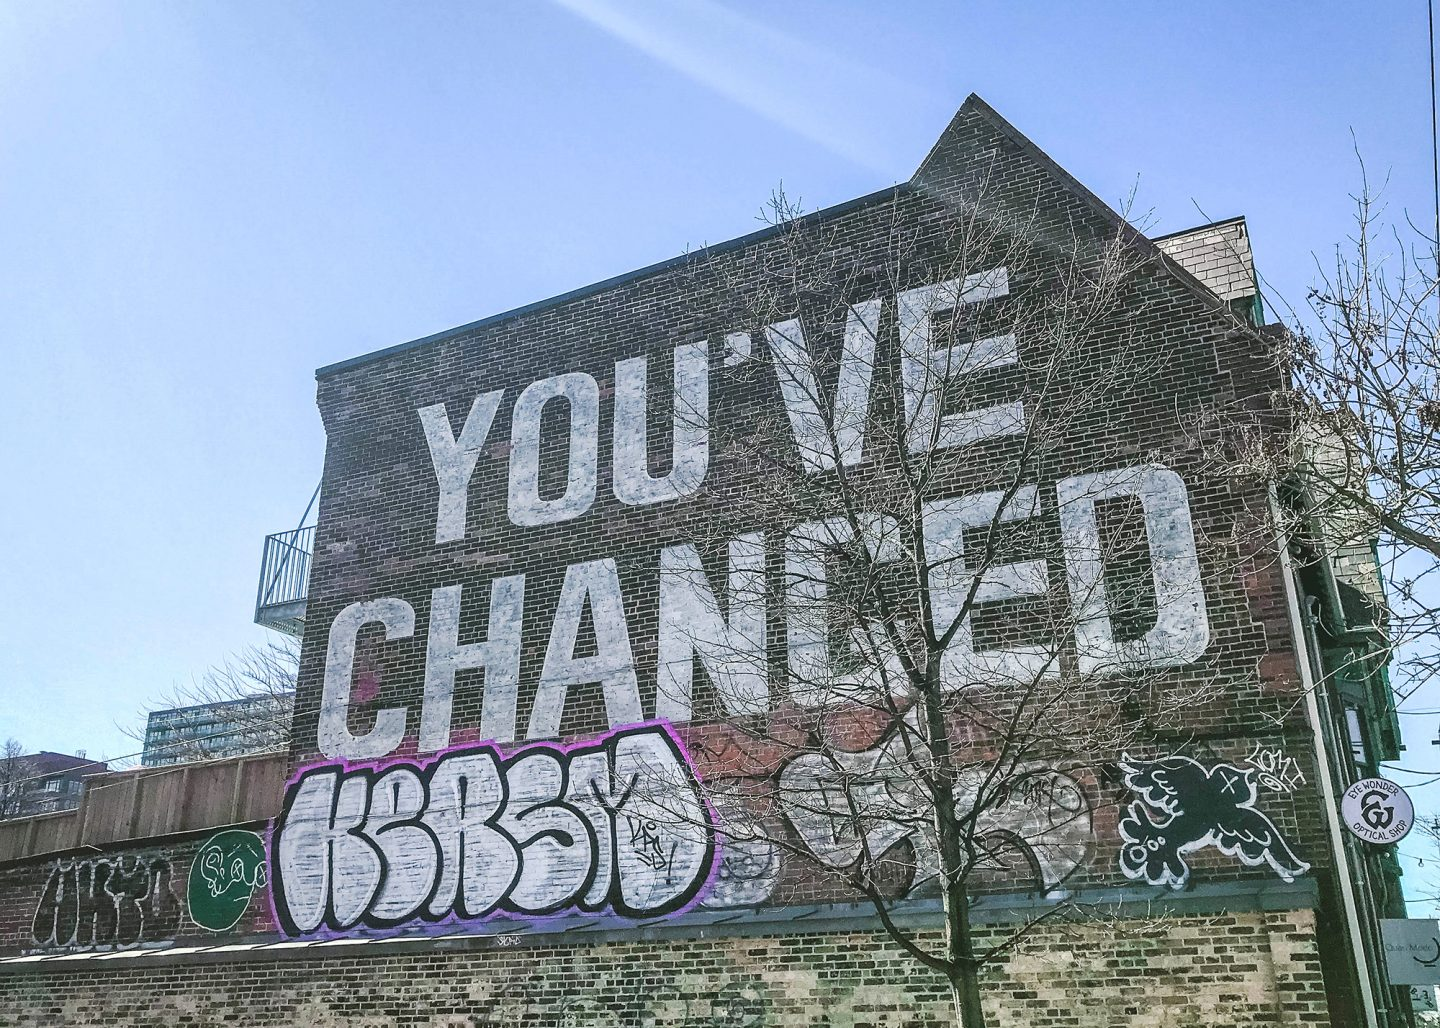 You've changed mural, Toronto